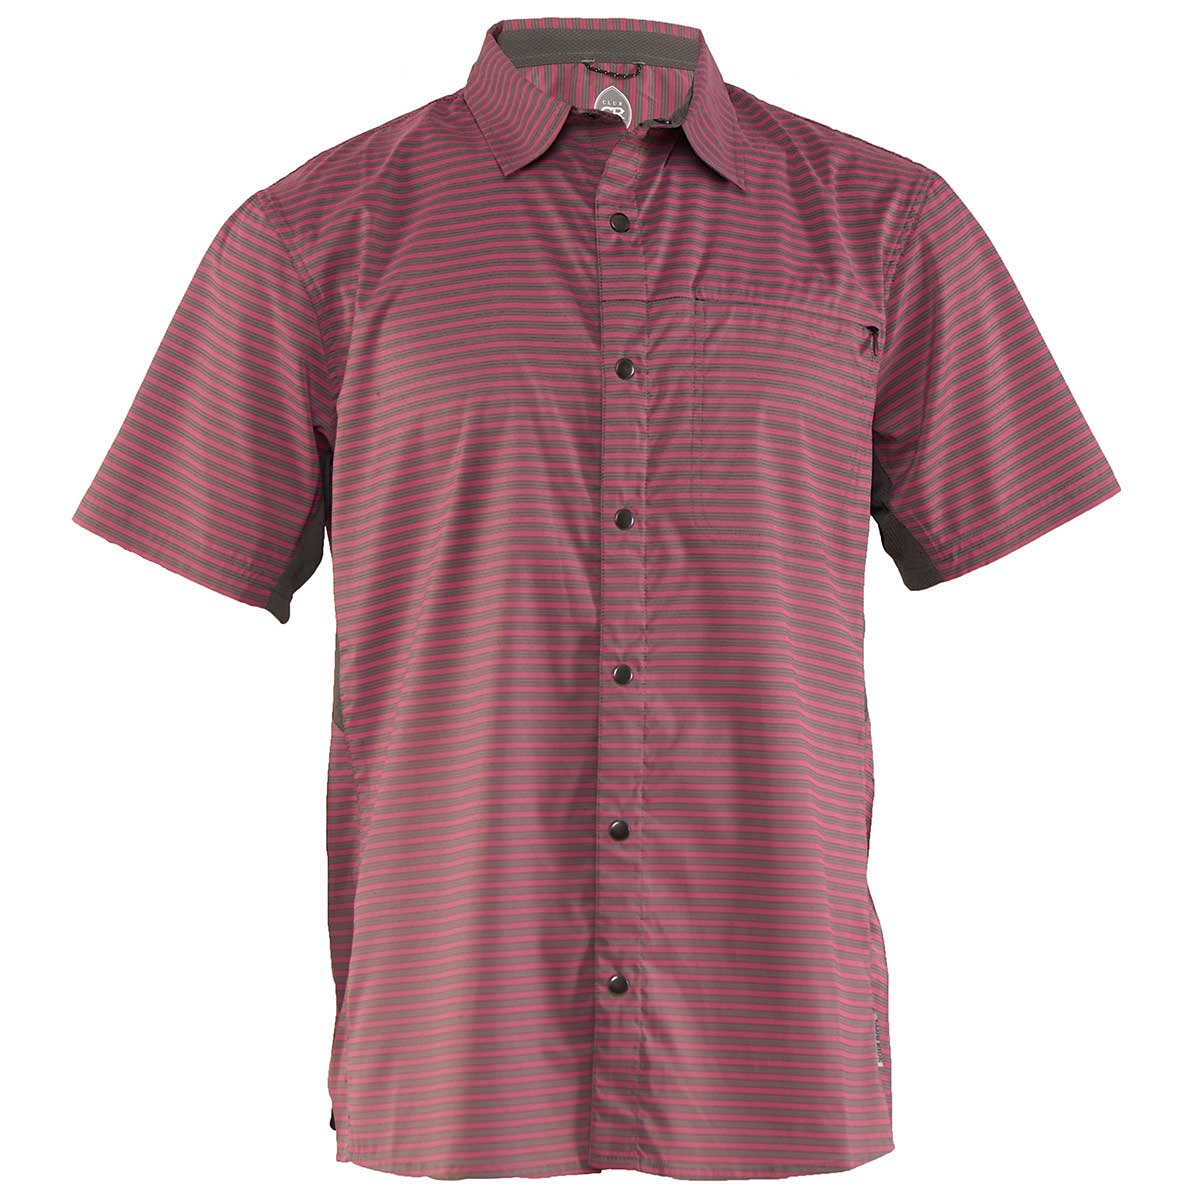 Club Ride men's Vibe Jersey in Merlot Stripe